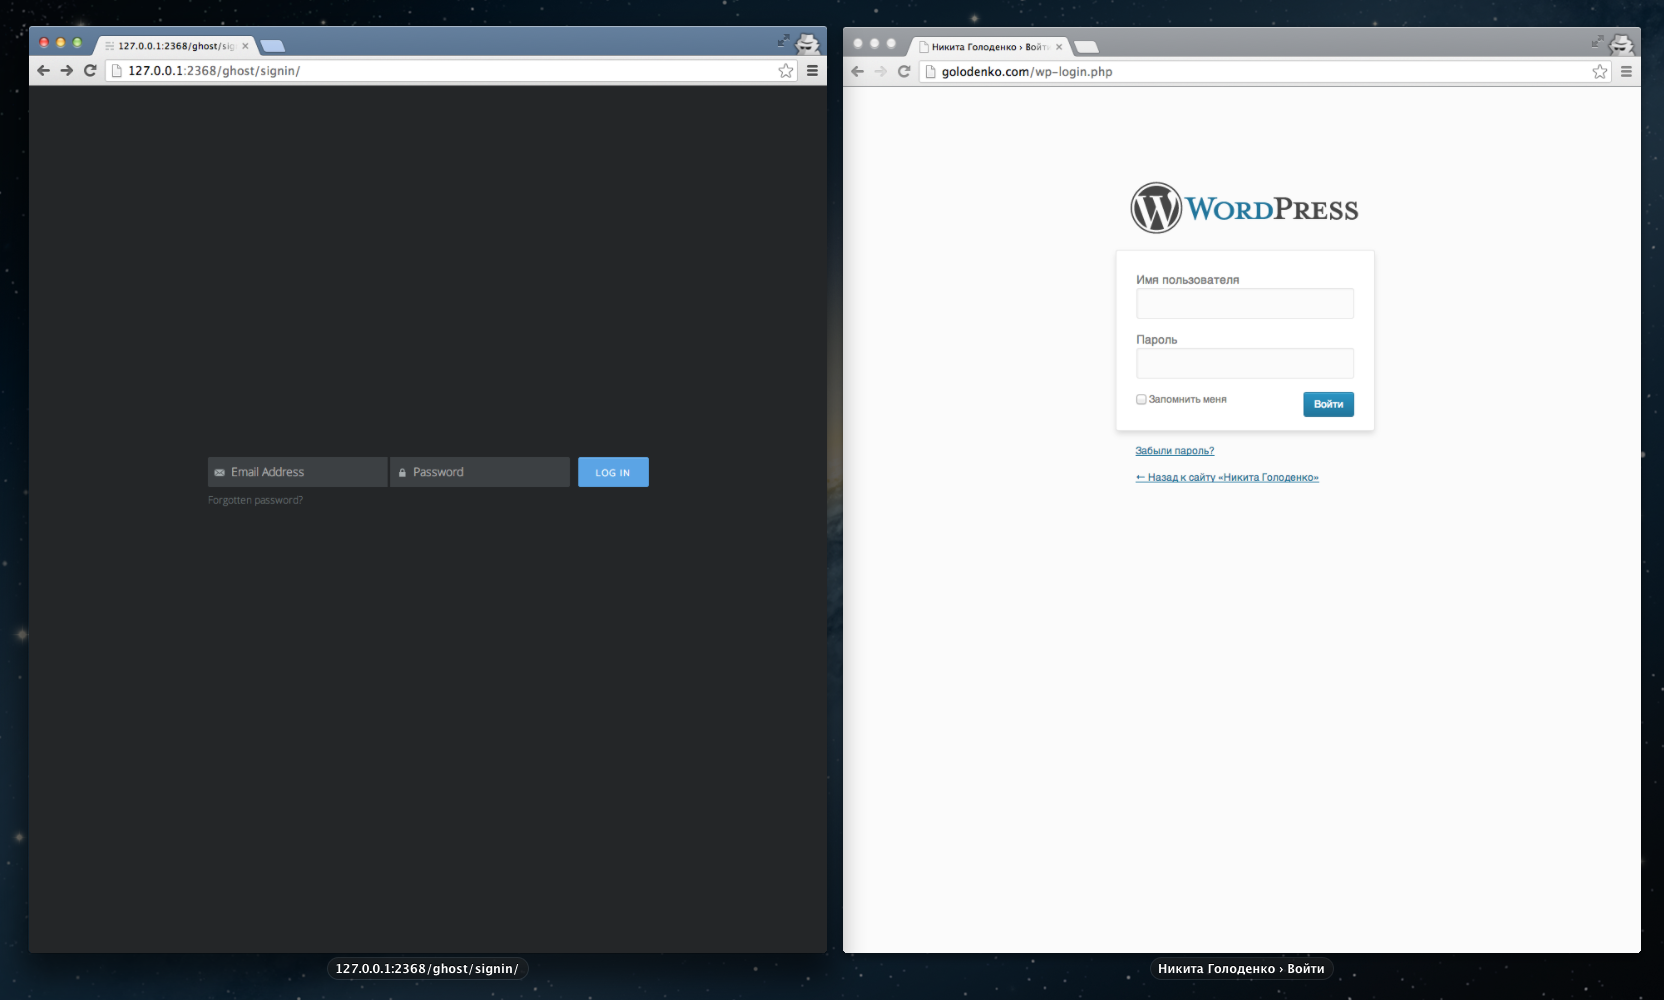 wordpress ghost admin panel